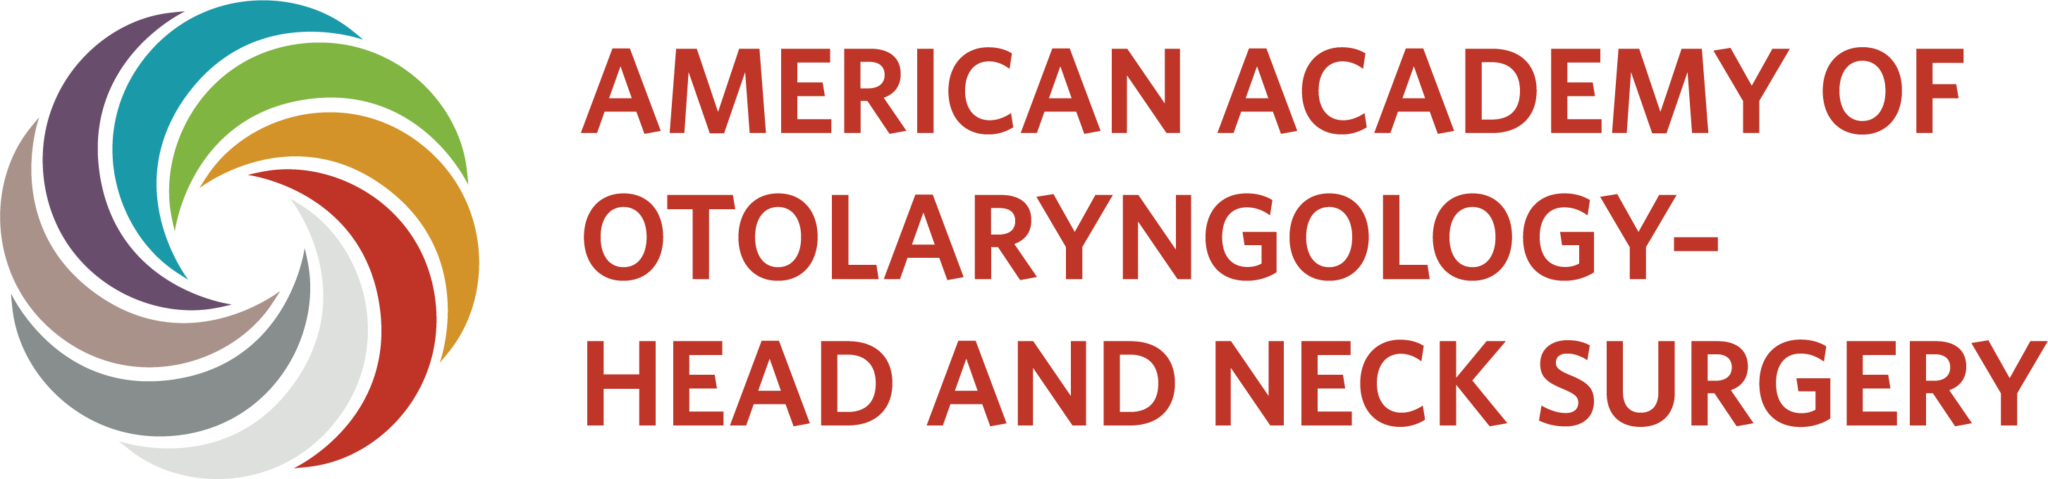 American American Academy of Otolaryngology–Head and Neck Surgery (AAO-HNS) Tower ENT Los Angelescademy of Otolaryngology–Head and Neck Surgery (AAO-HNS